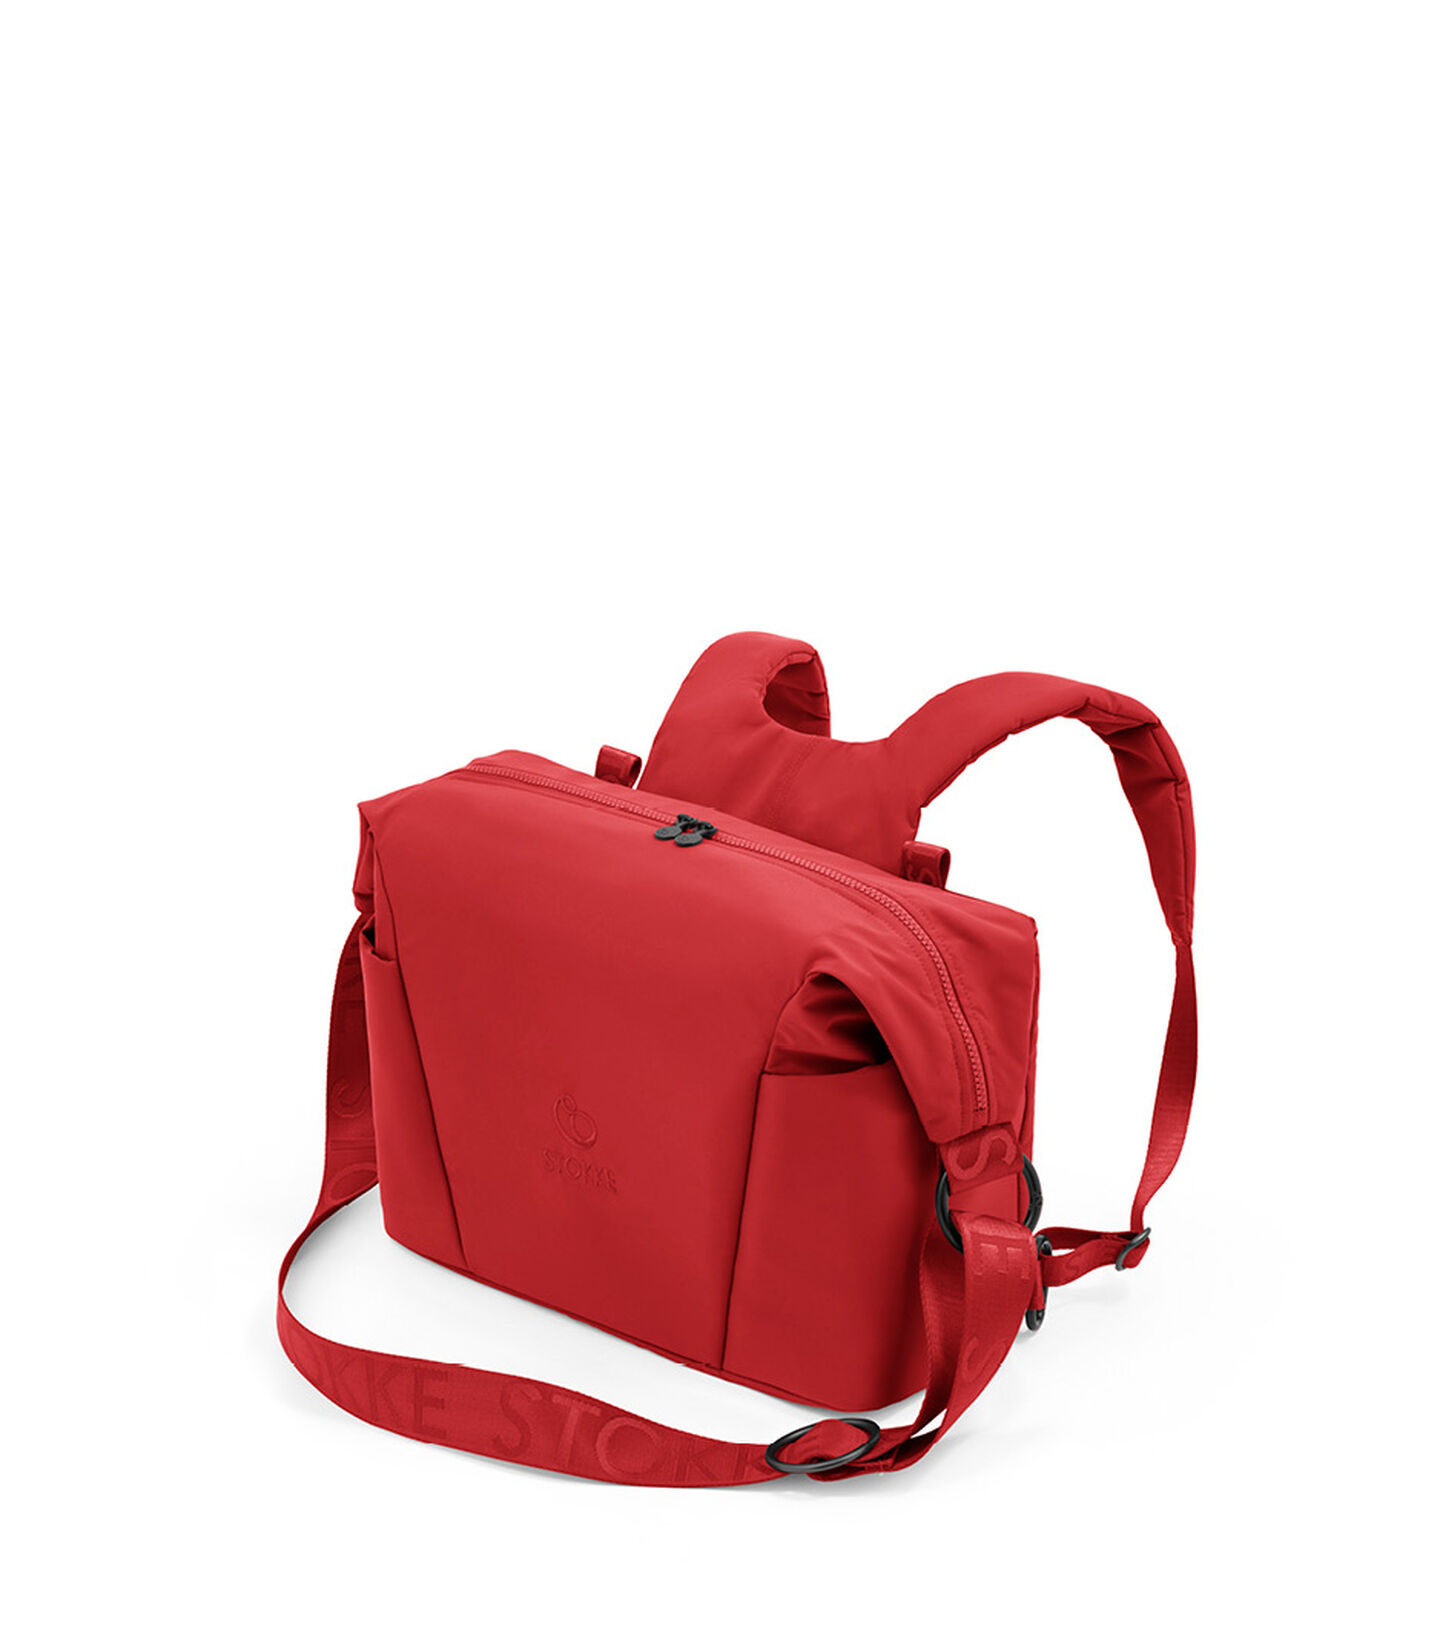 Stokke® Xplory® X Changing Bag Ruby Red. Accessories.  view 1